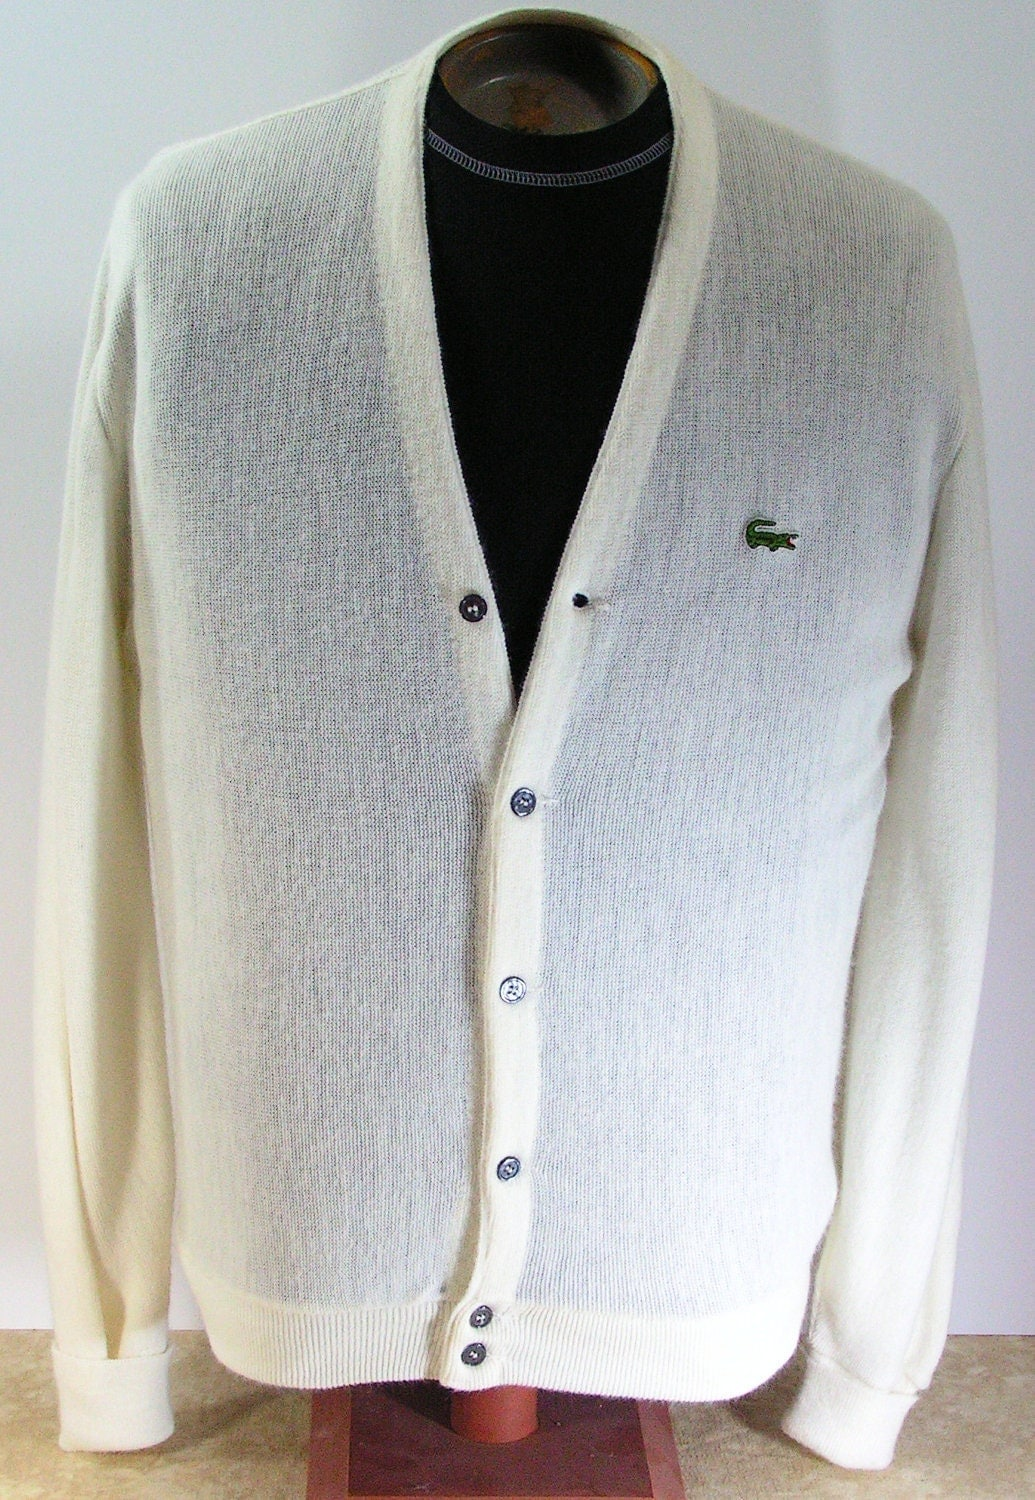 Izod Lacoste Sweater Mens Large White Cardigan L 1980s Vintage